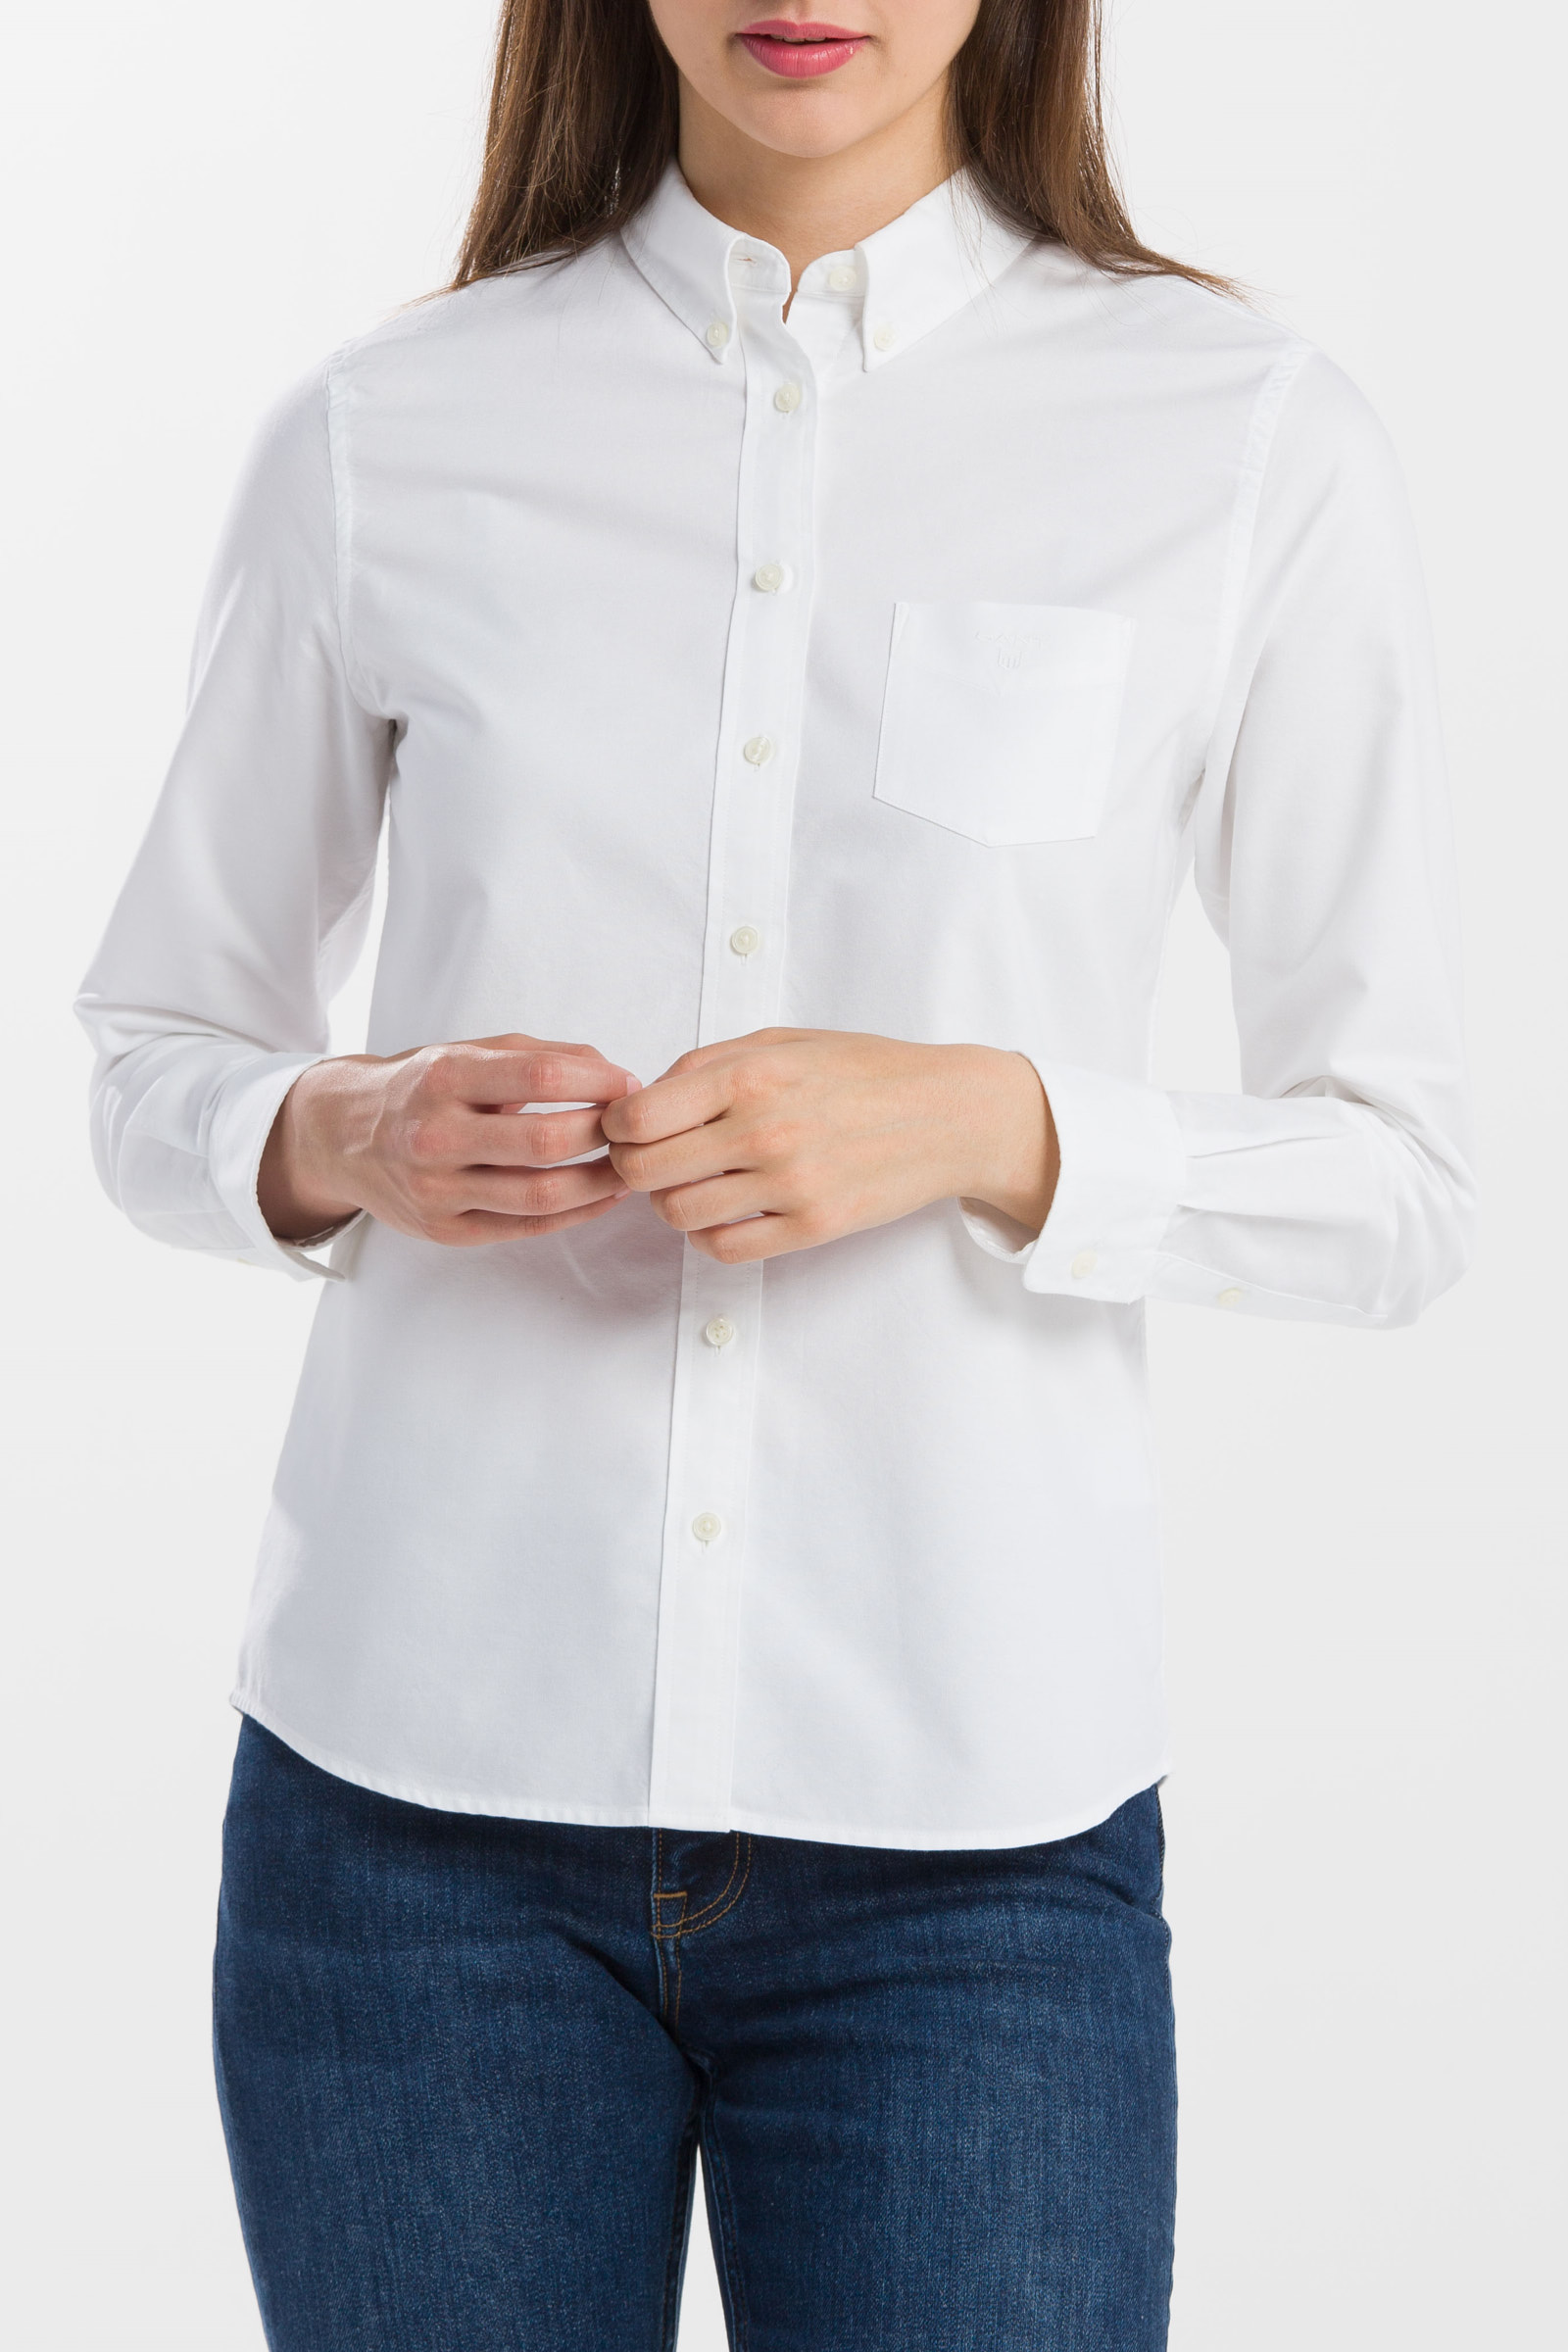 Ko?ile Gant Perfect Oxford Shirt